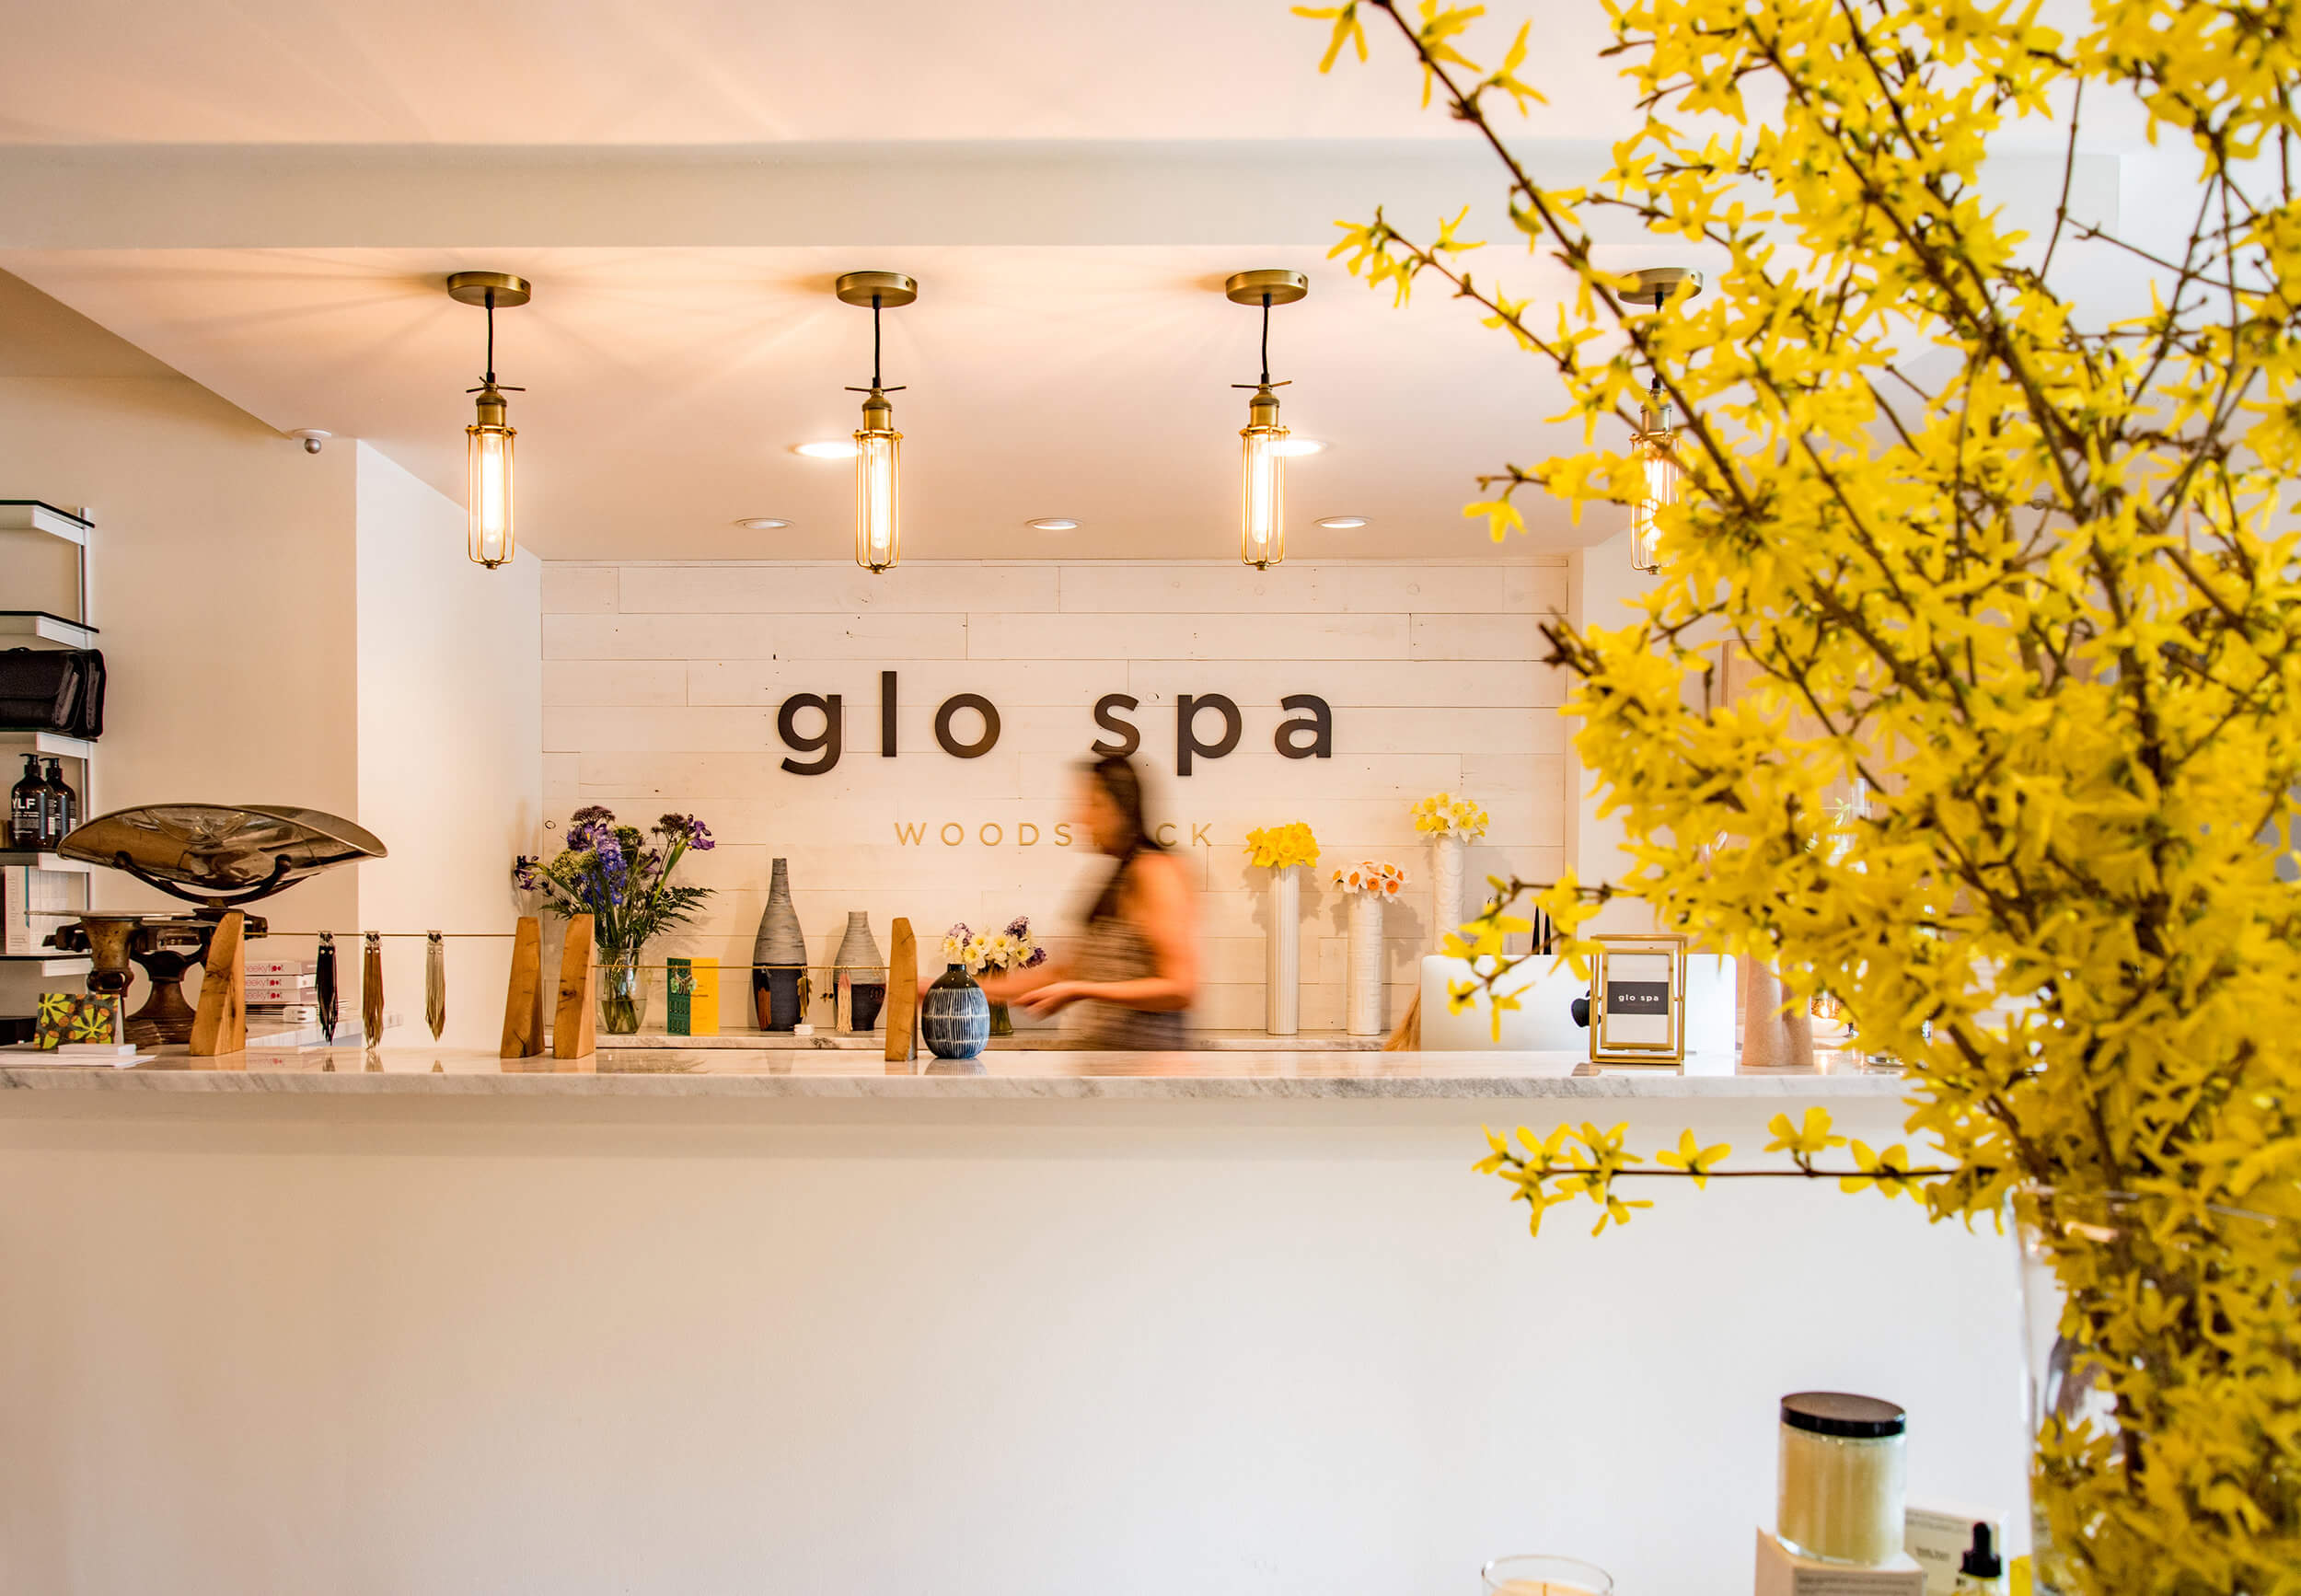 glo-spa-front.jpg